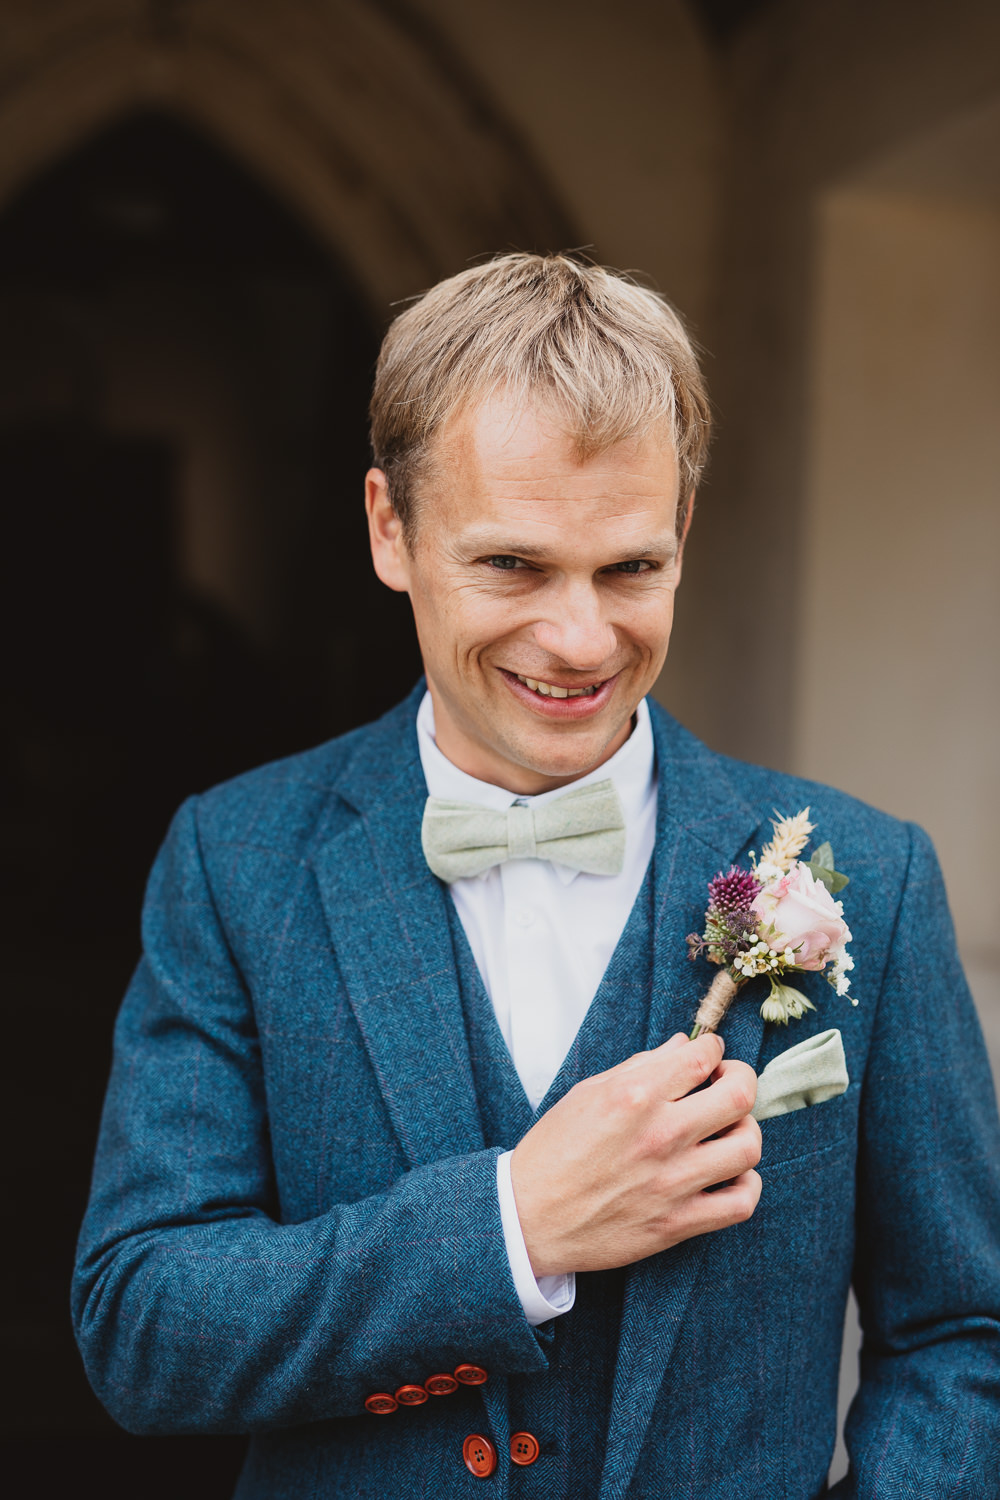 Groom Groomsmen Suits Navy Tweed Bow Tie Buttonhole Flowers Clear Marquee Wedding Sarah Brookes Photography